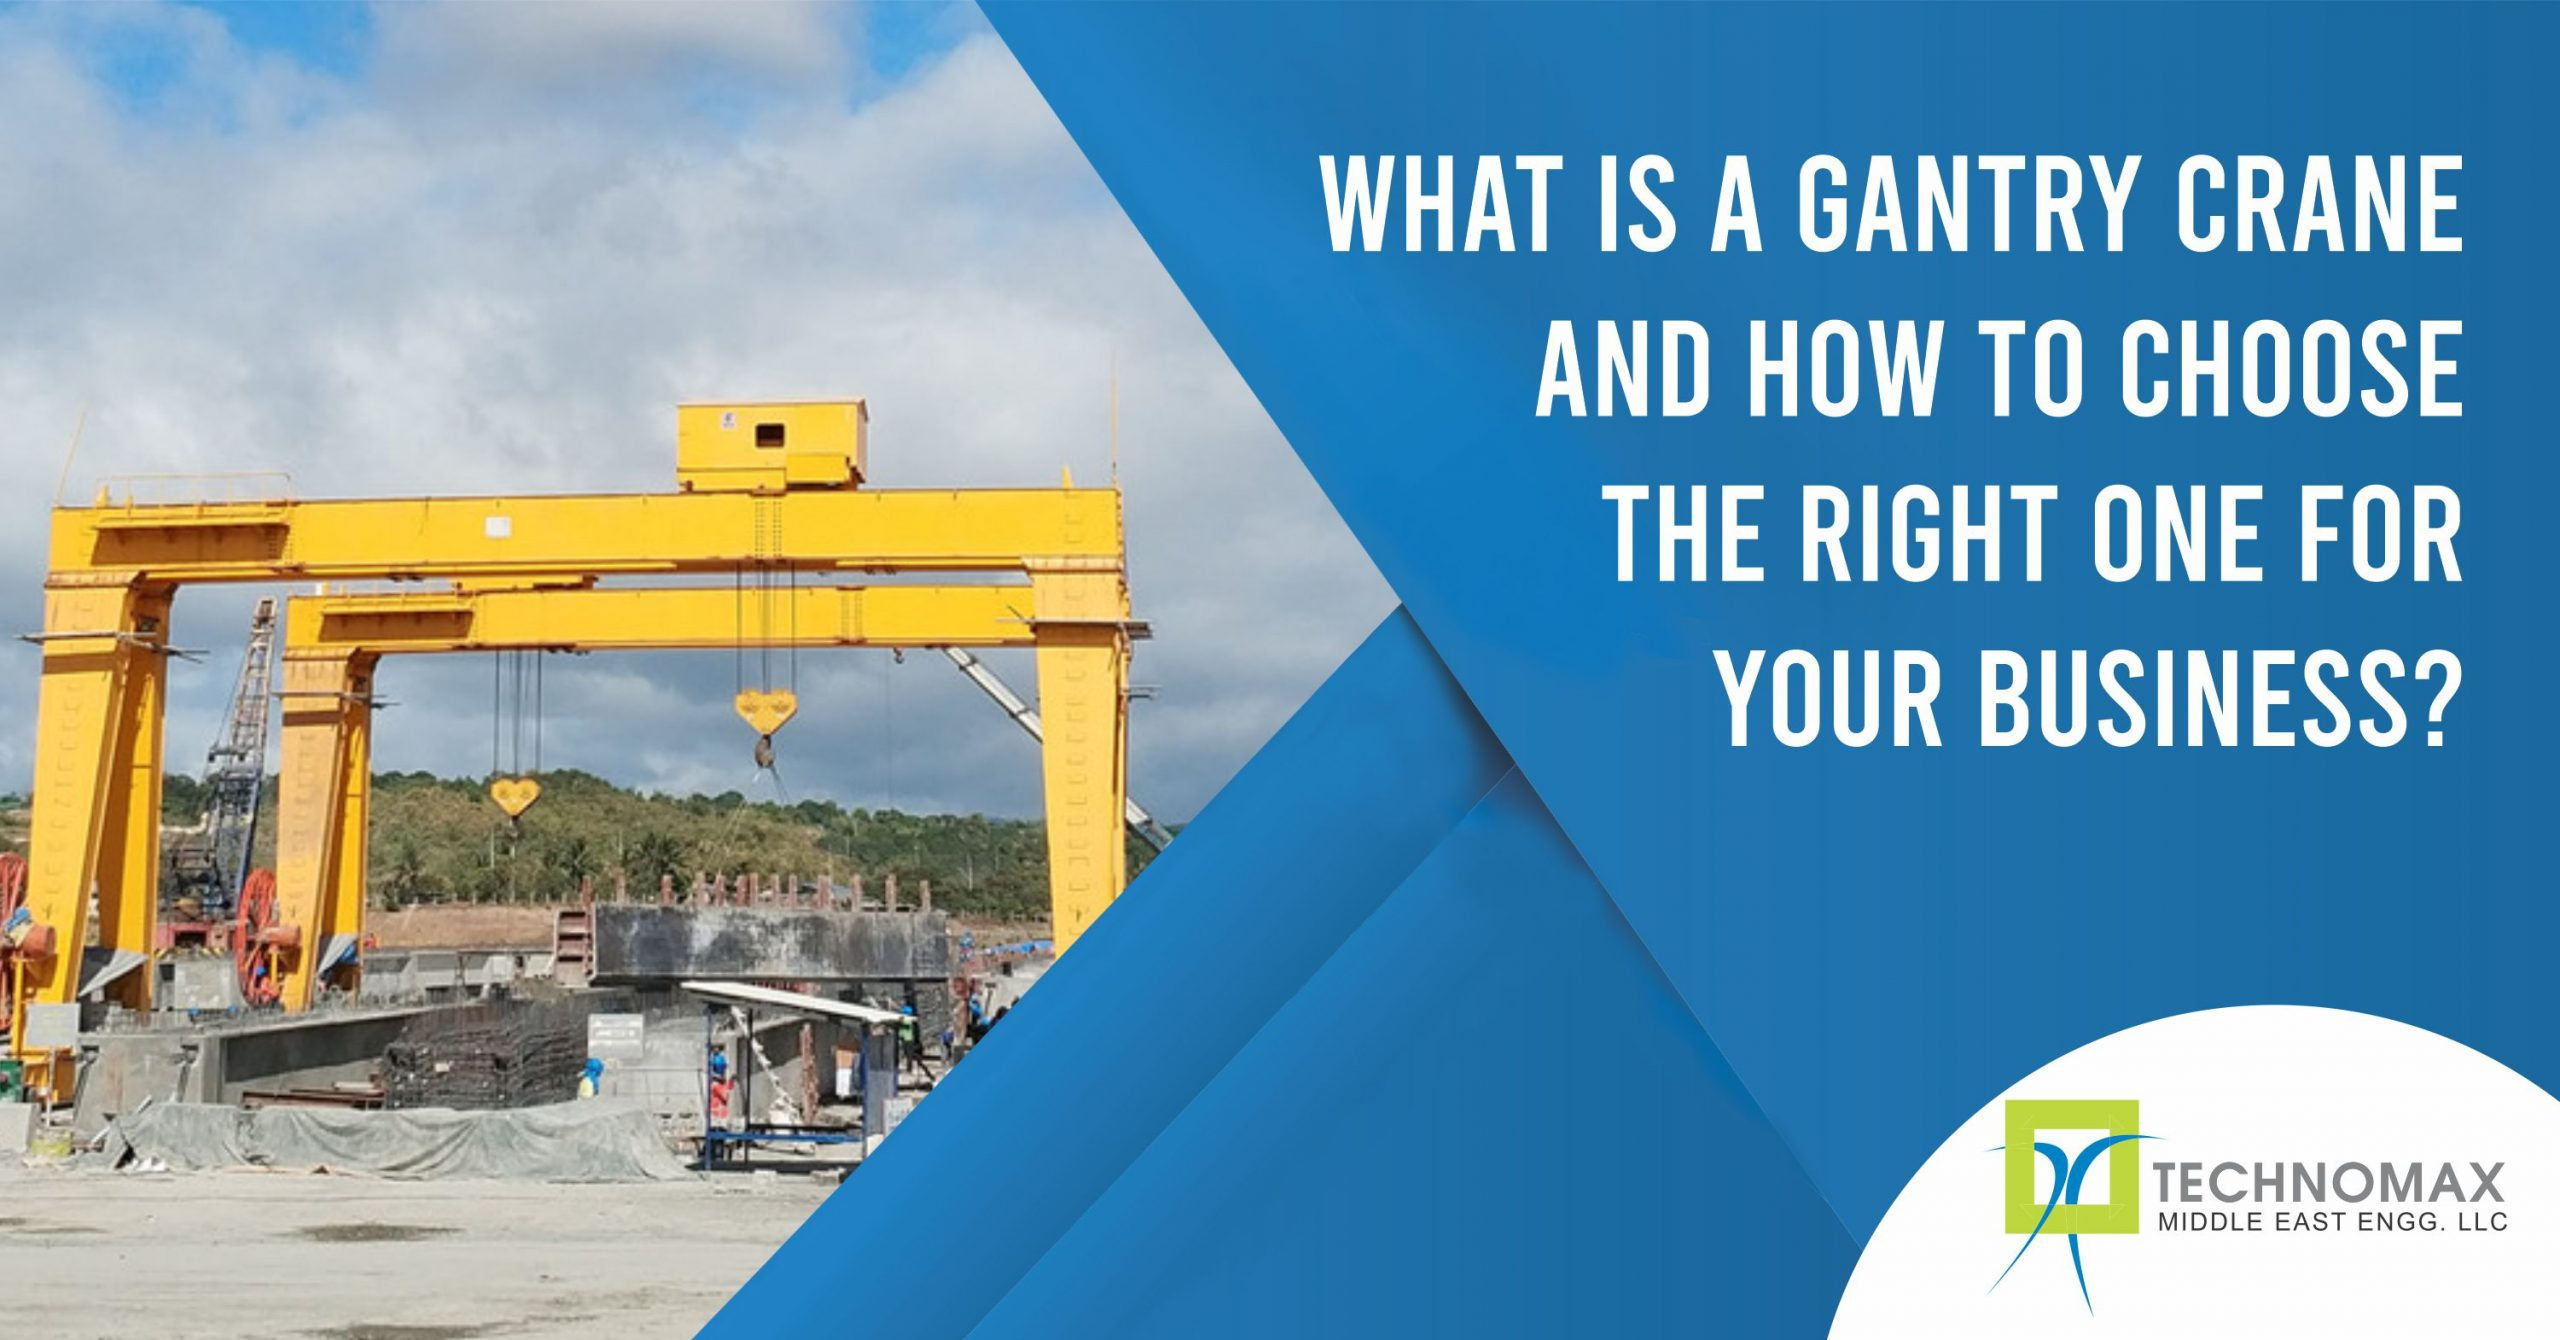 What is a gantry crane